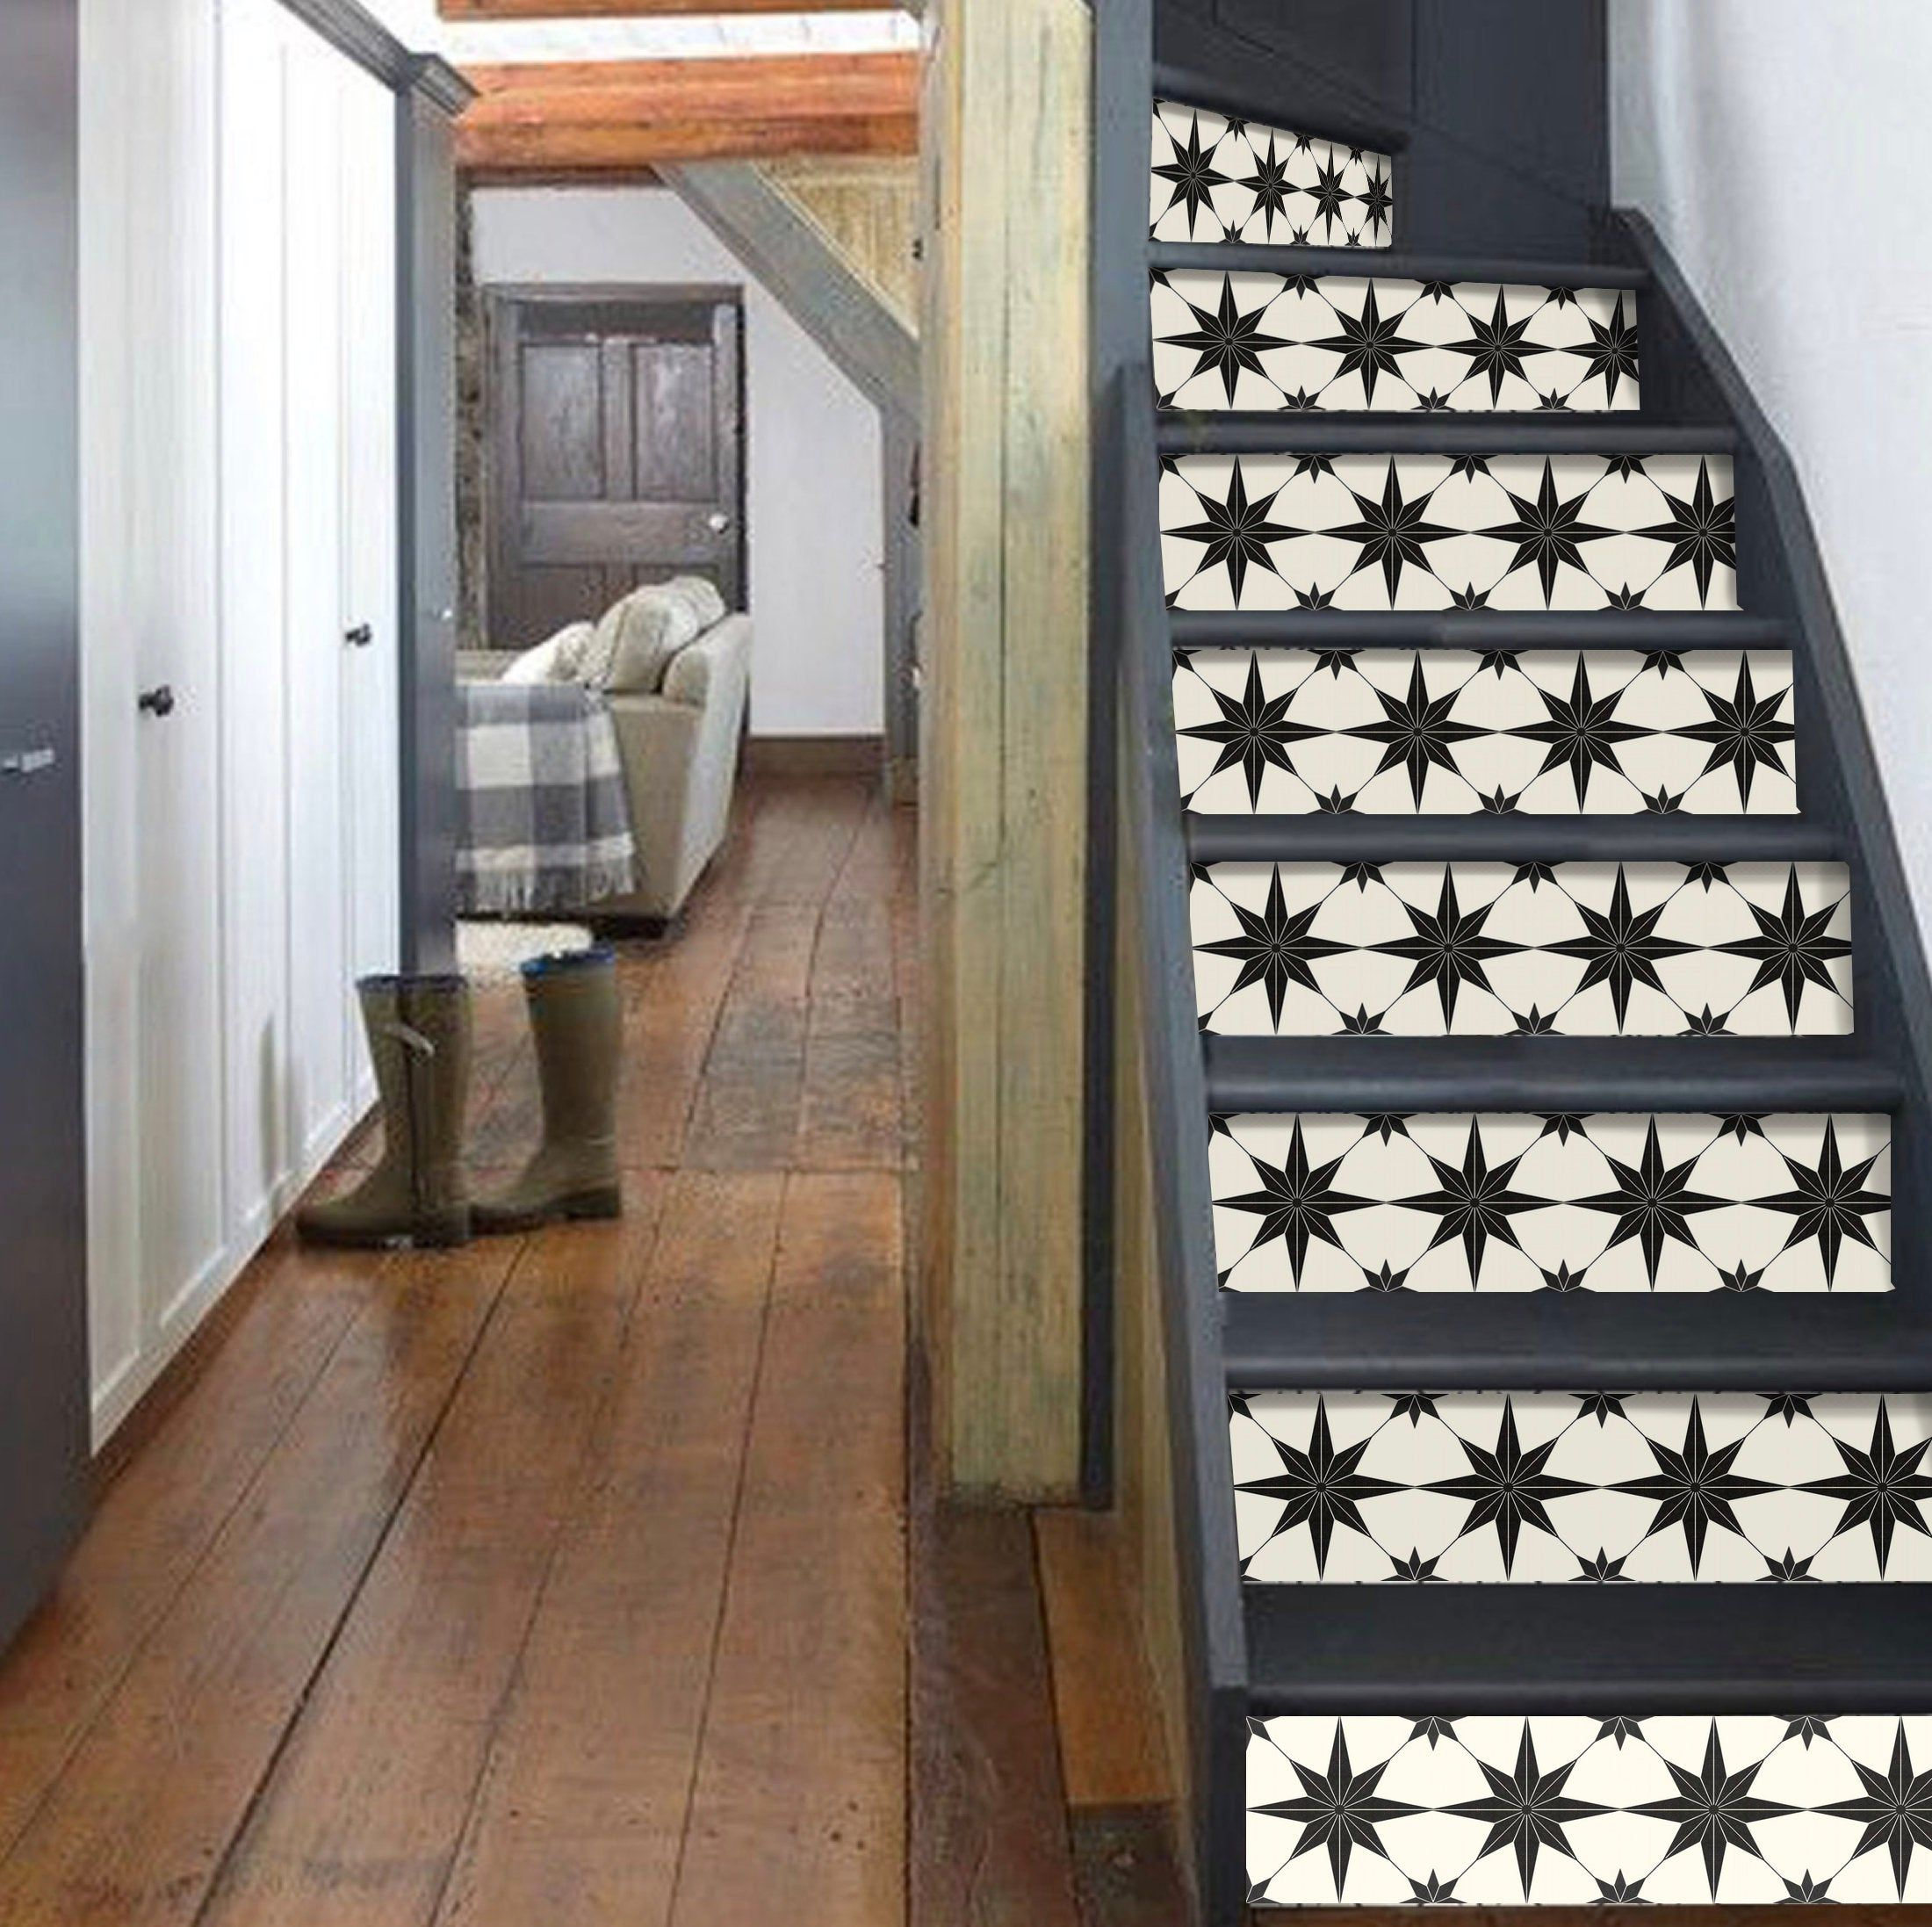 15steps Stair Riser Vinyl Strips Removable Sticker Peel Stick A58 By Snazzydecal On Etsy Stair Riser Vinyl Stair Risers Stairs